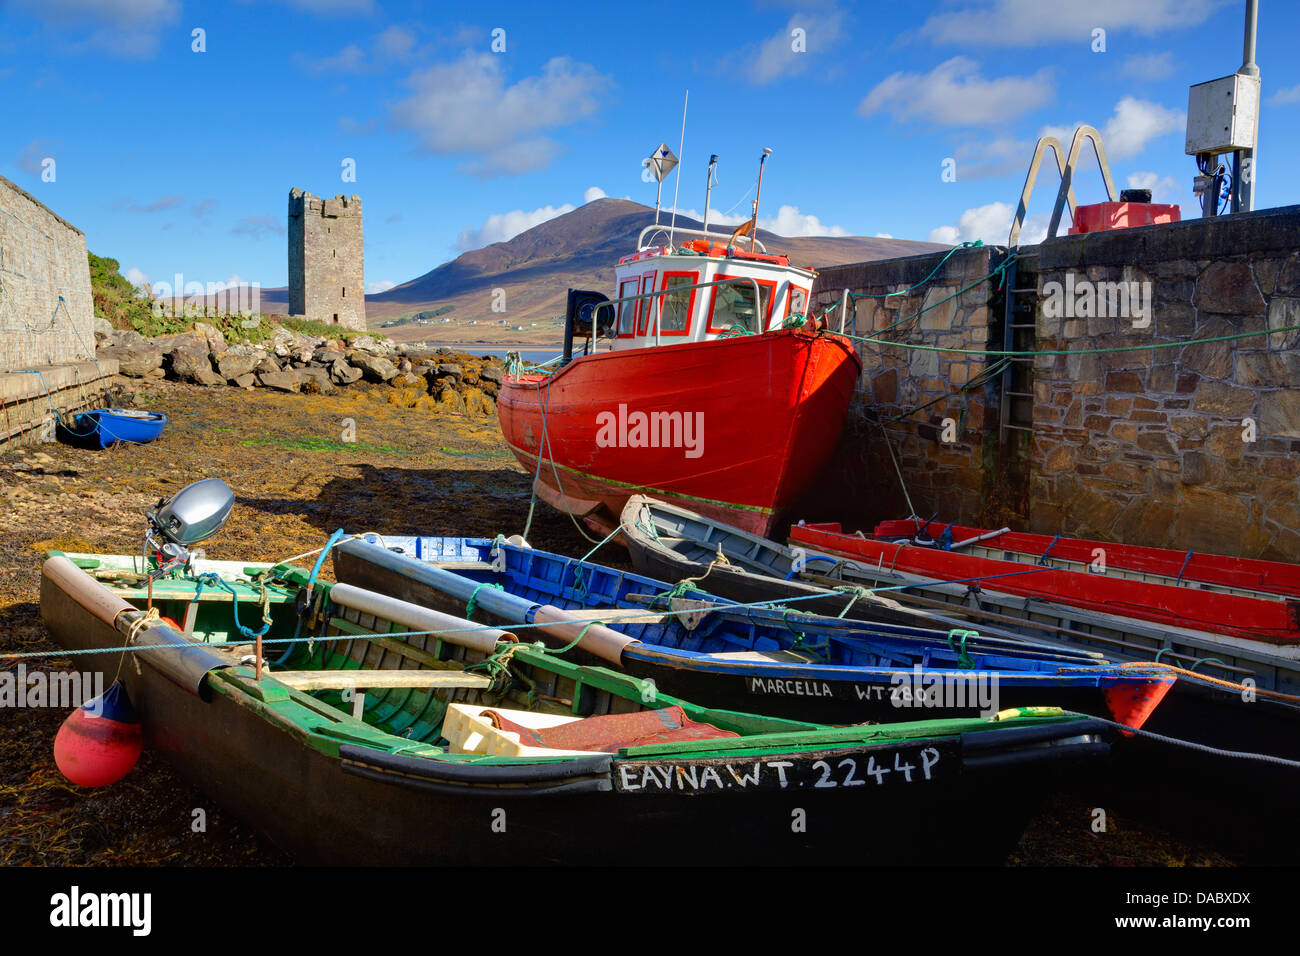 Fishing boats at Kildownet Pier, Achill Island, County Mayo, Connaught (Connacht), Republic of Ireland, Europe - Stock Image